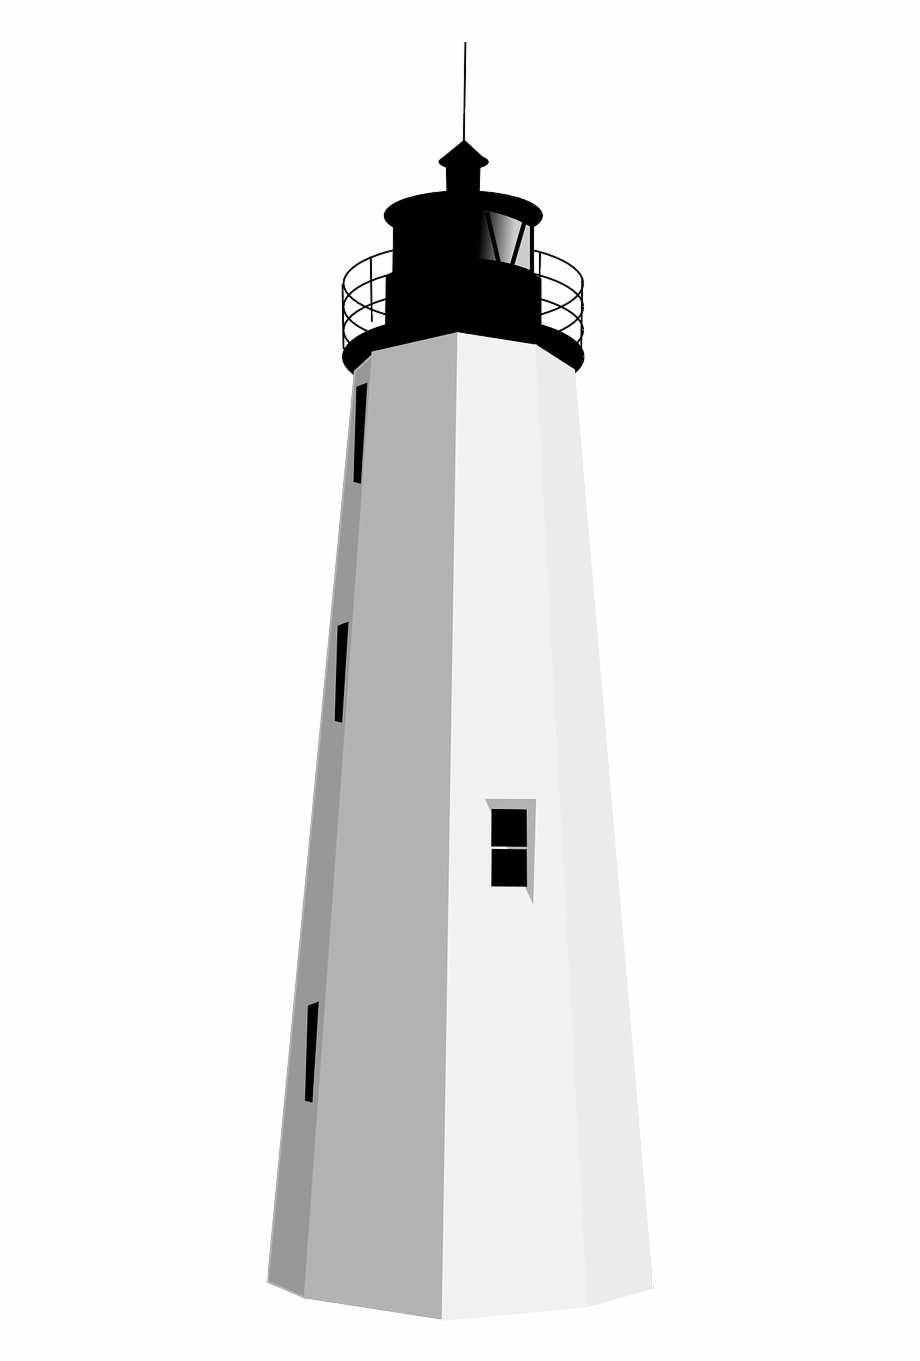 Watch tower clipart vector download Lighthouse,beacon,light Vector Graphics - Watchtower Clipart ... vector download